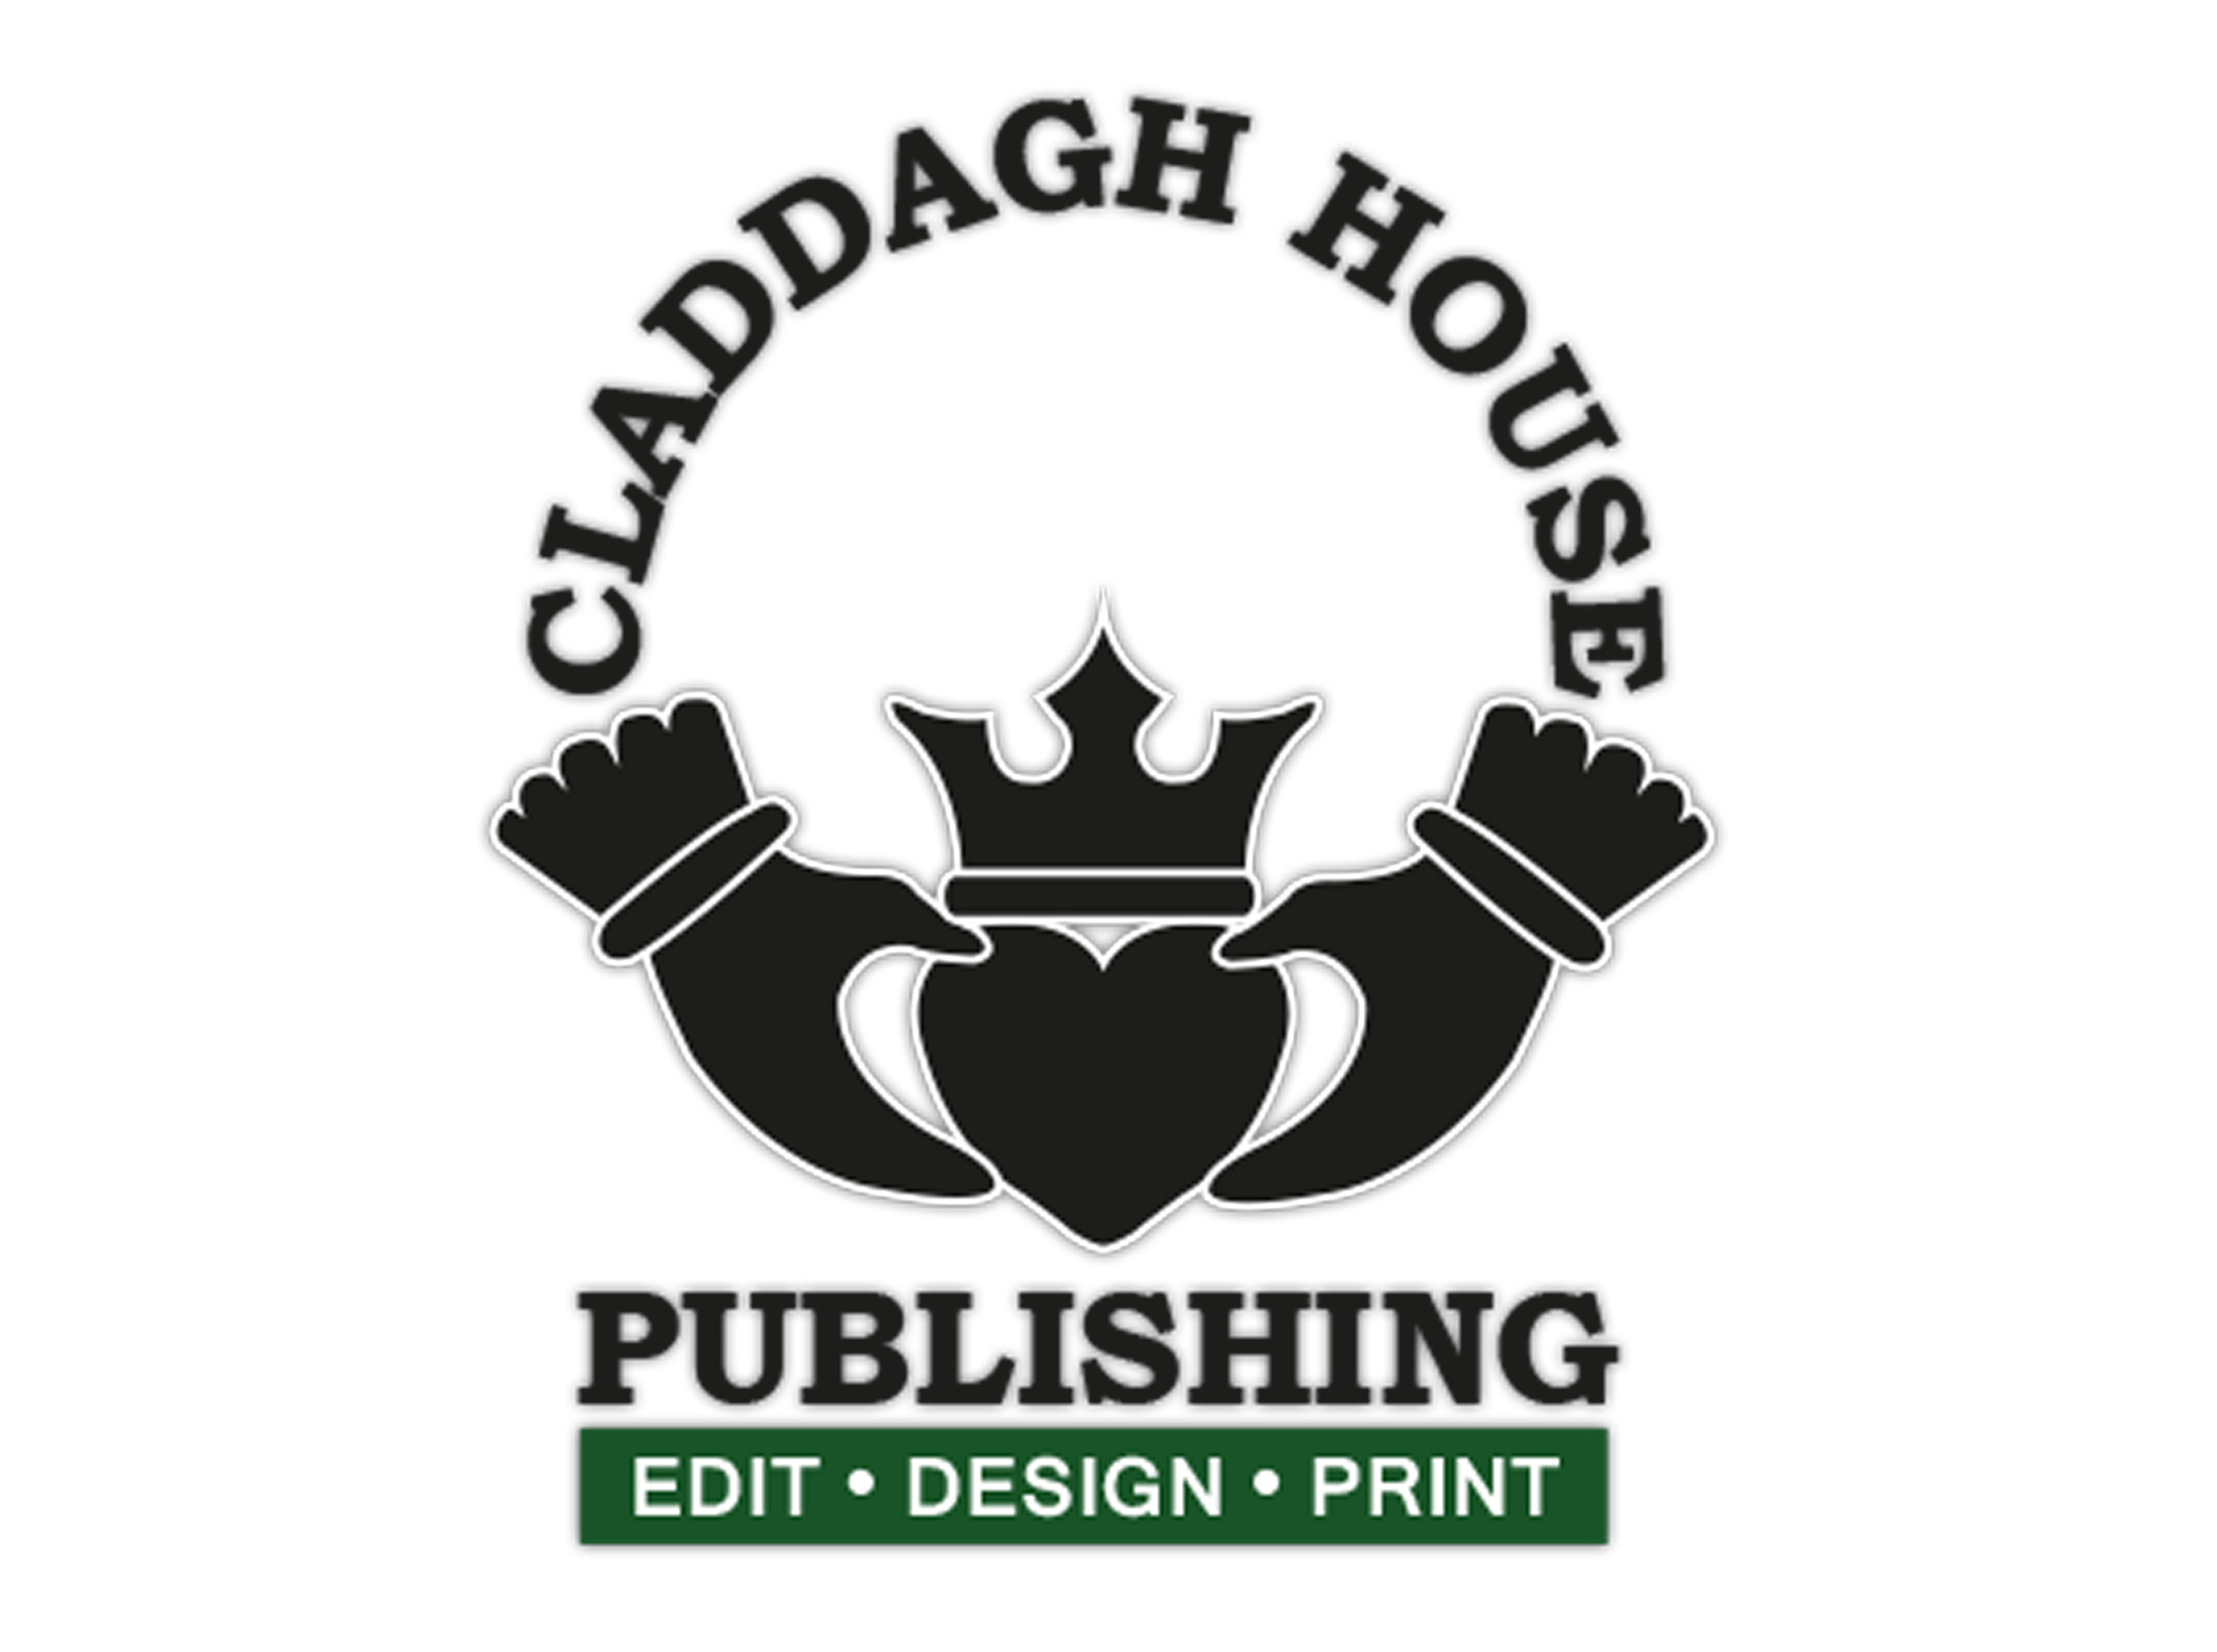 Claddagh House Publishing